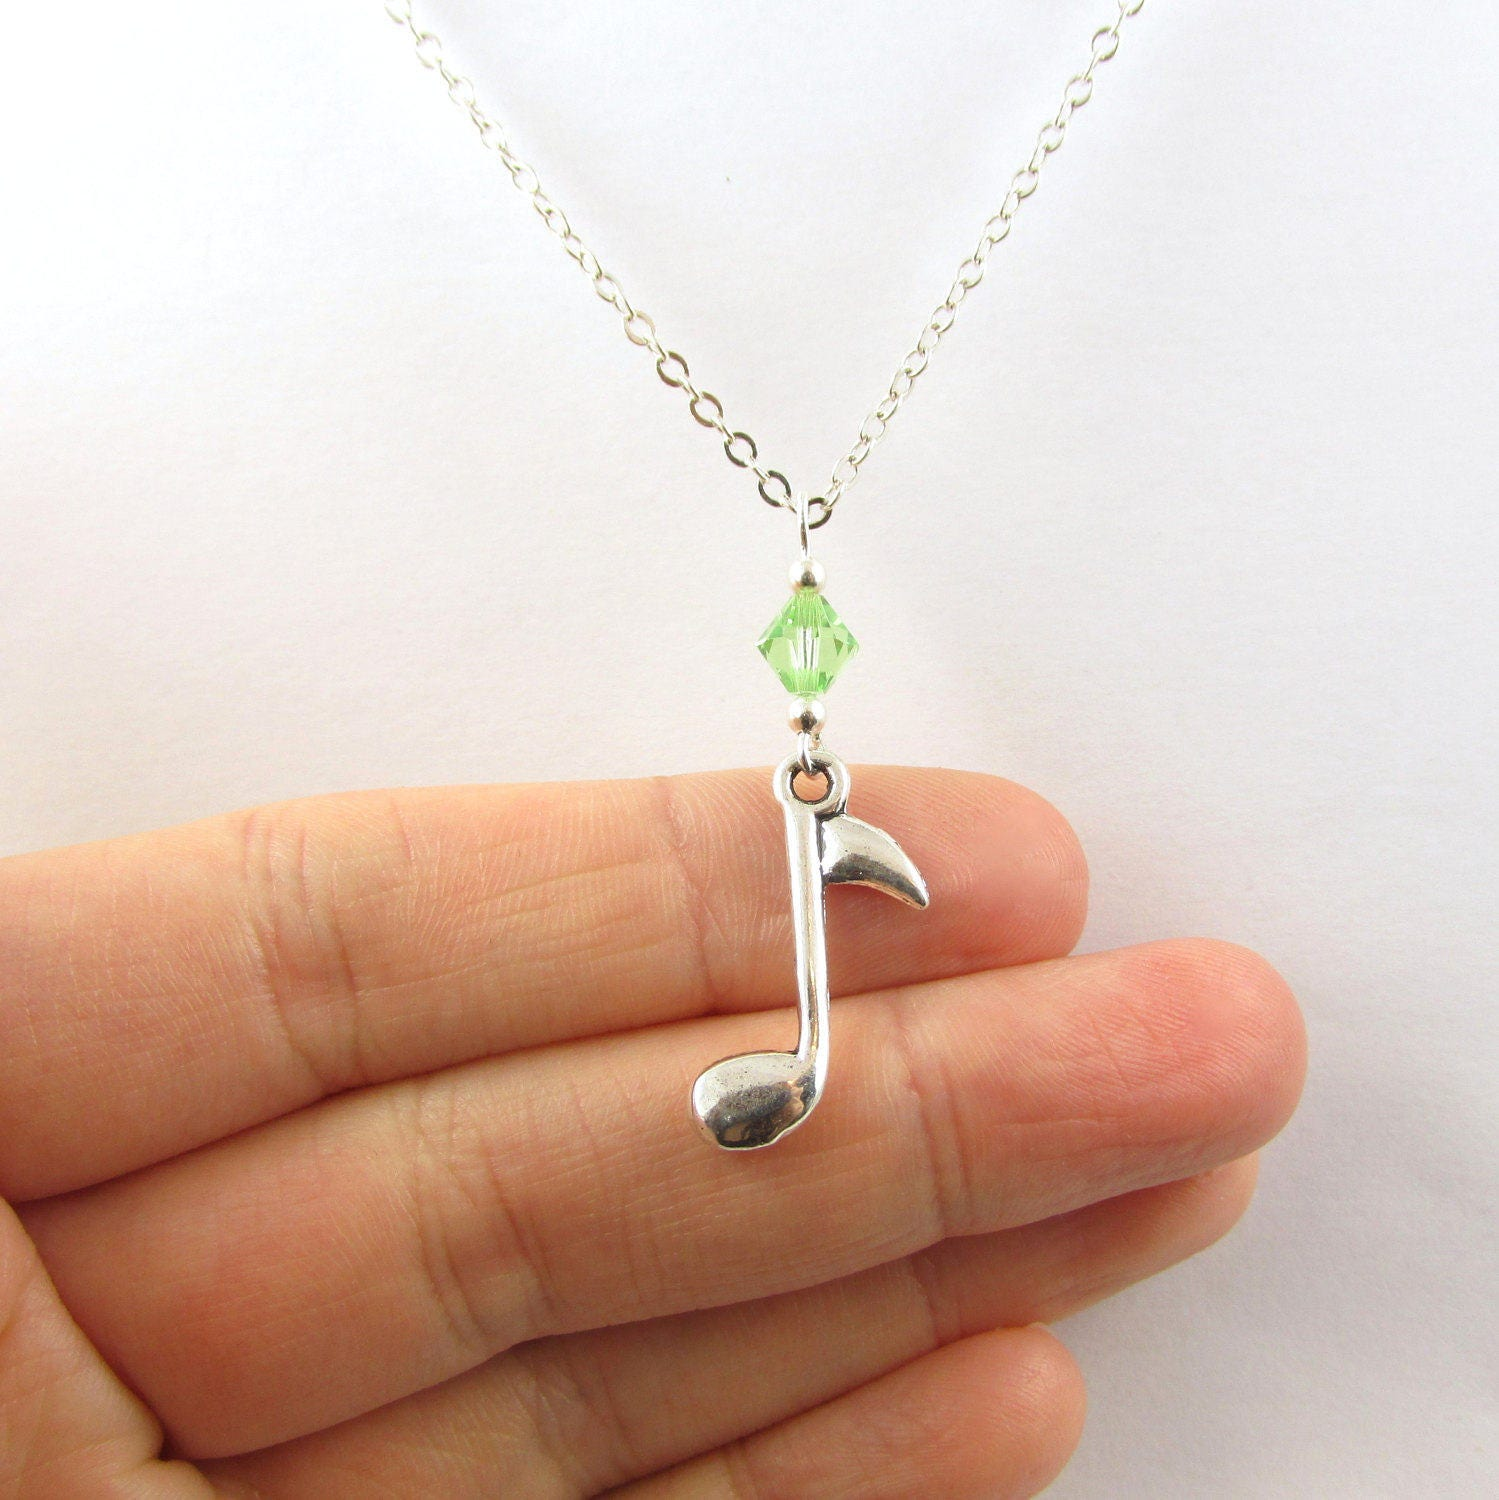 dictionary products pendant jewelry music teacher gift definition homemade and for necklace ideas musician